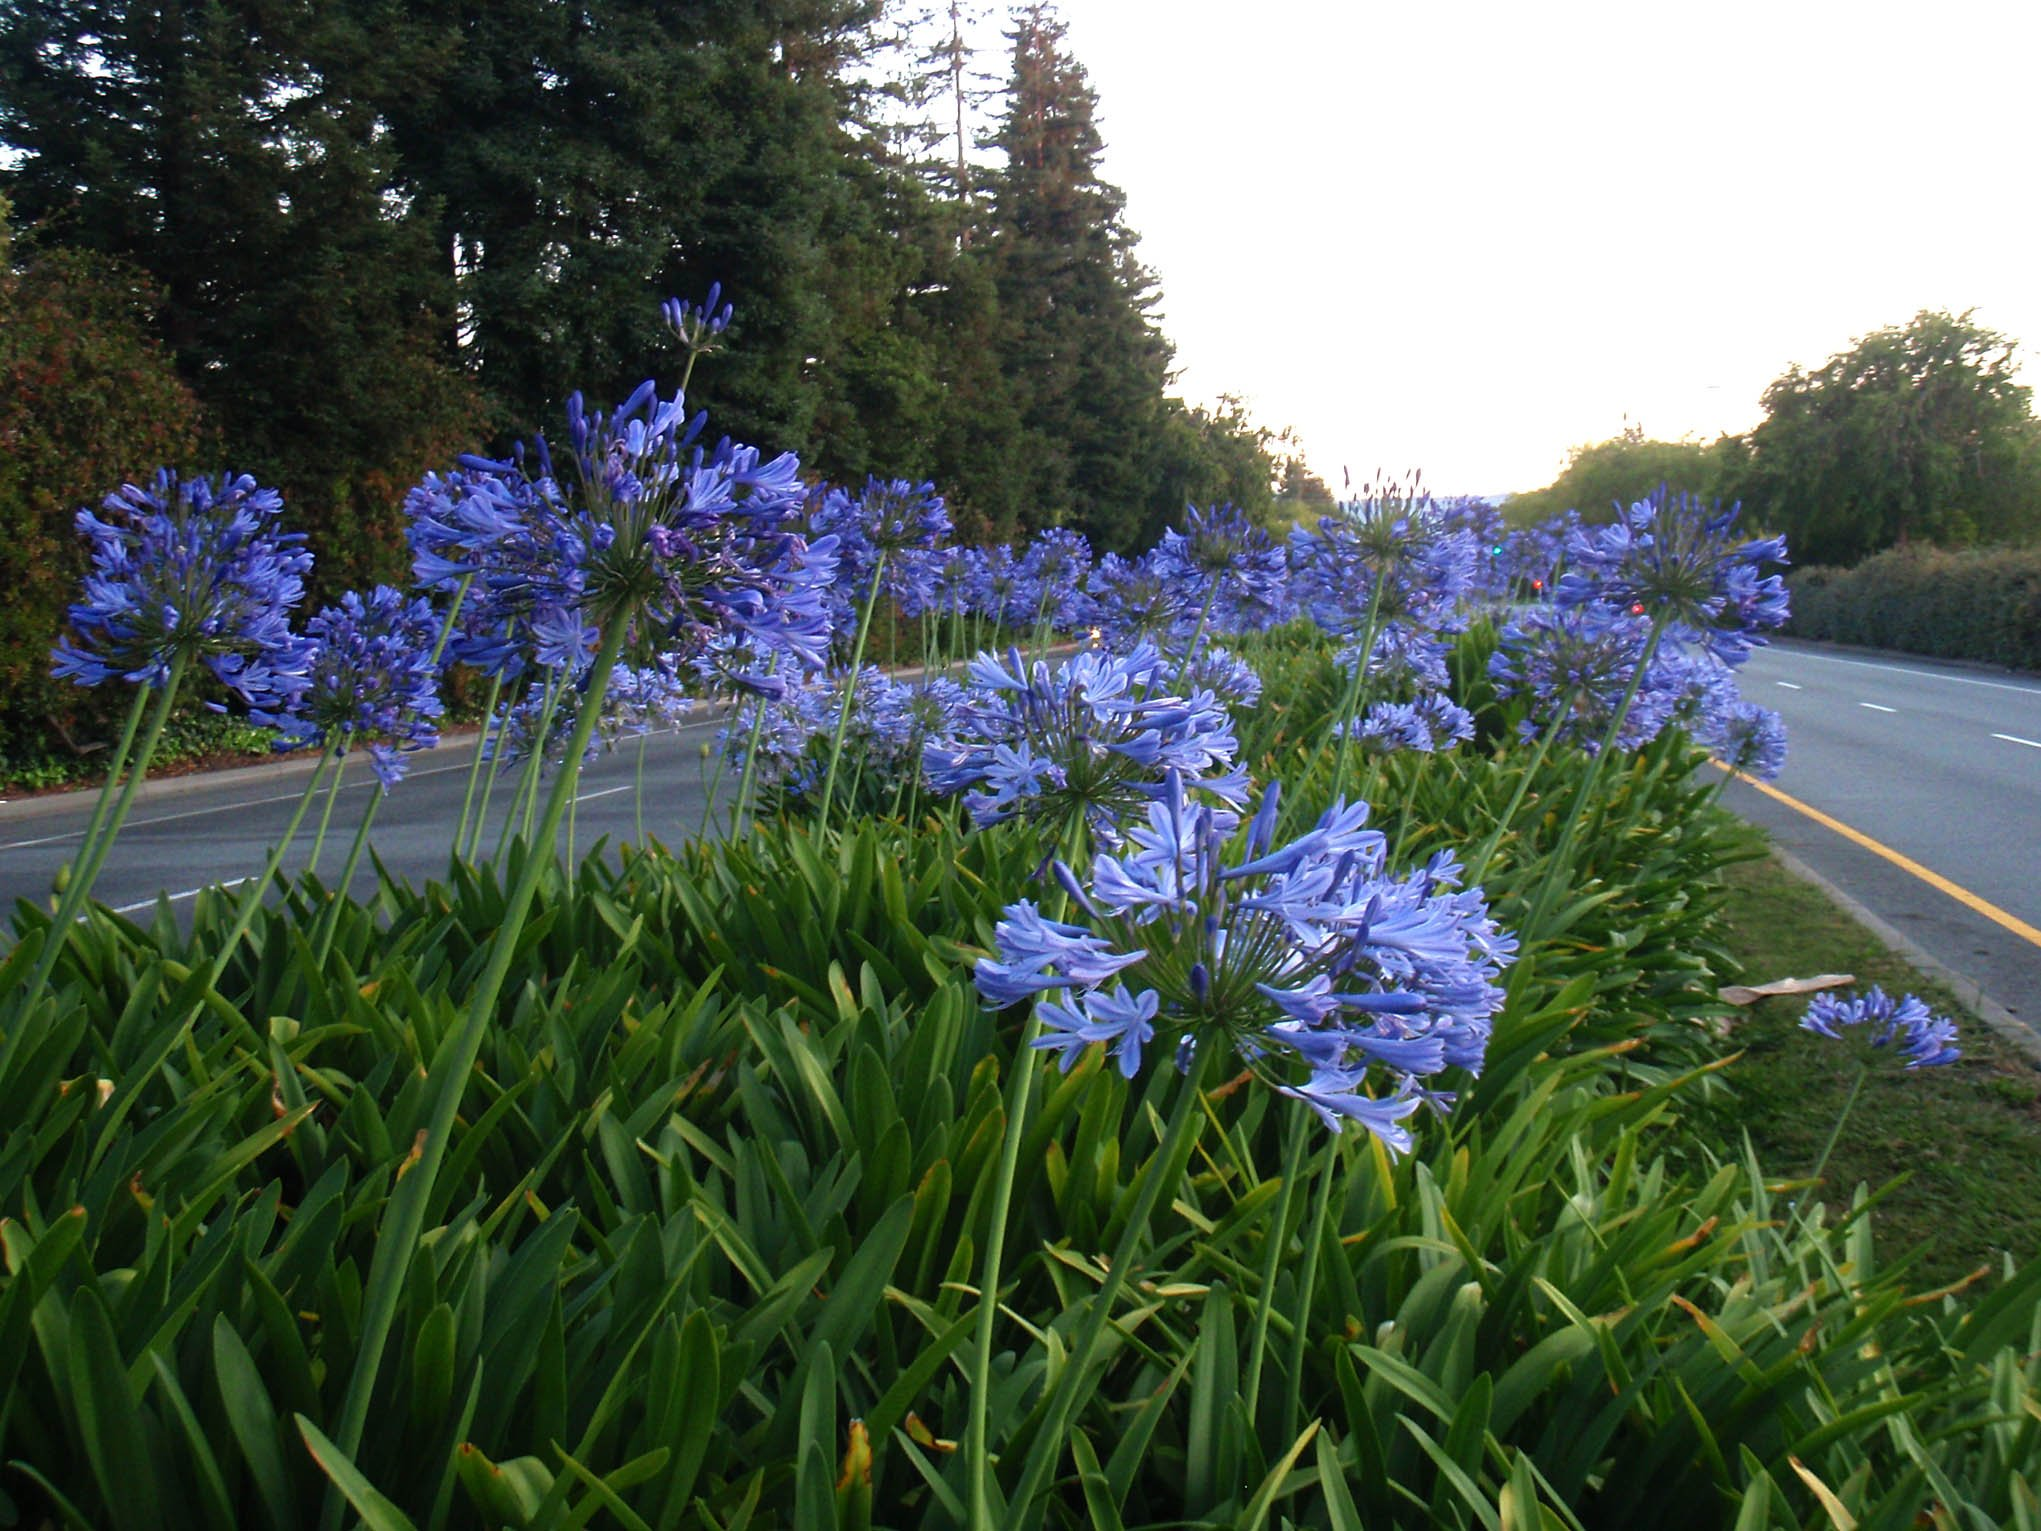 Agapanthus Lily of the Nile Qty 60 Live Plants Groundcover by Florida Foliage (Image #2)